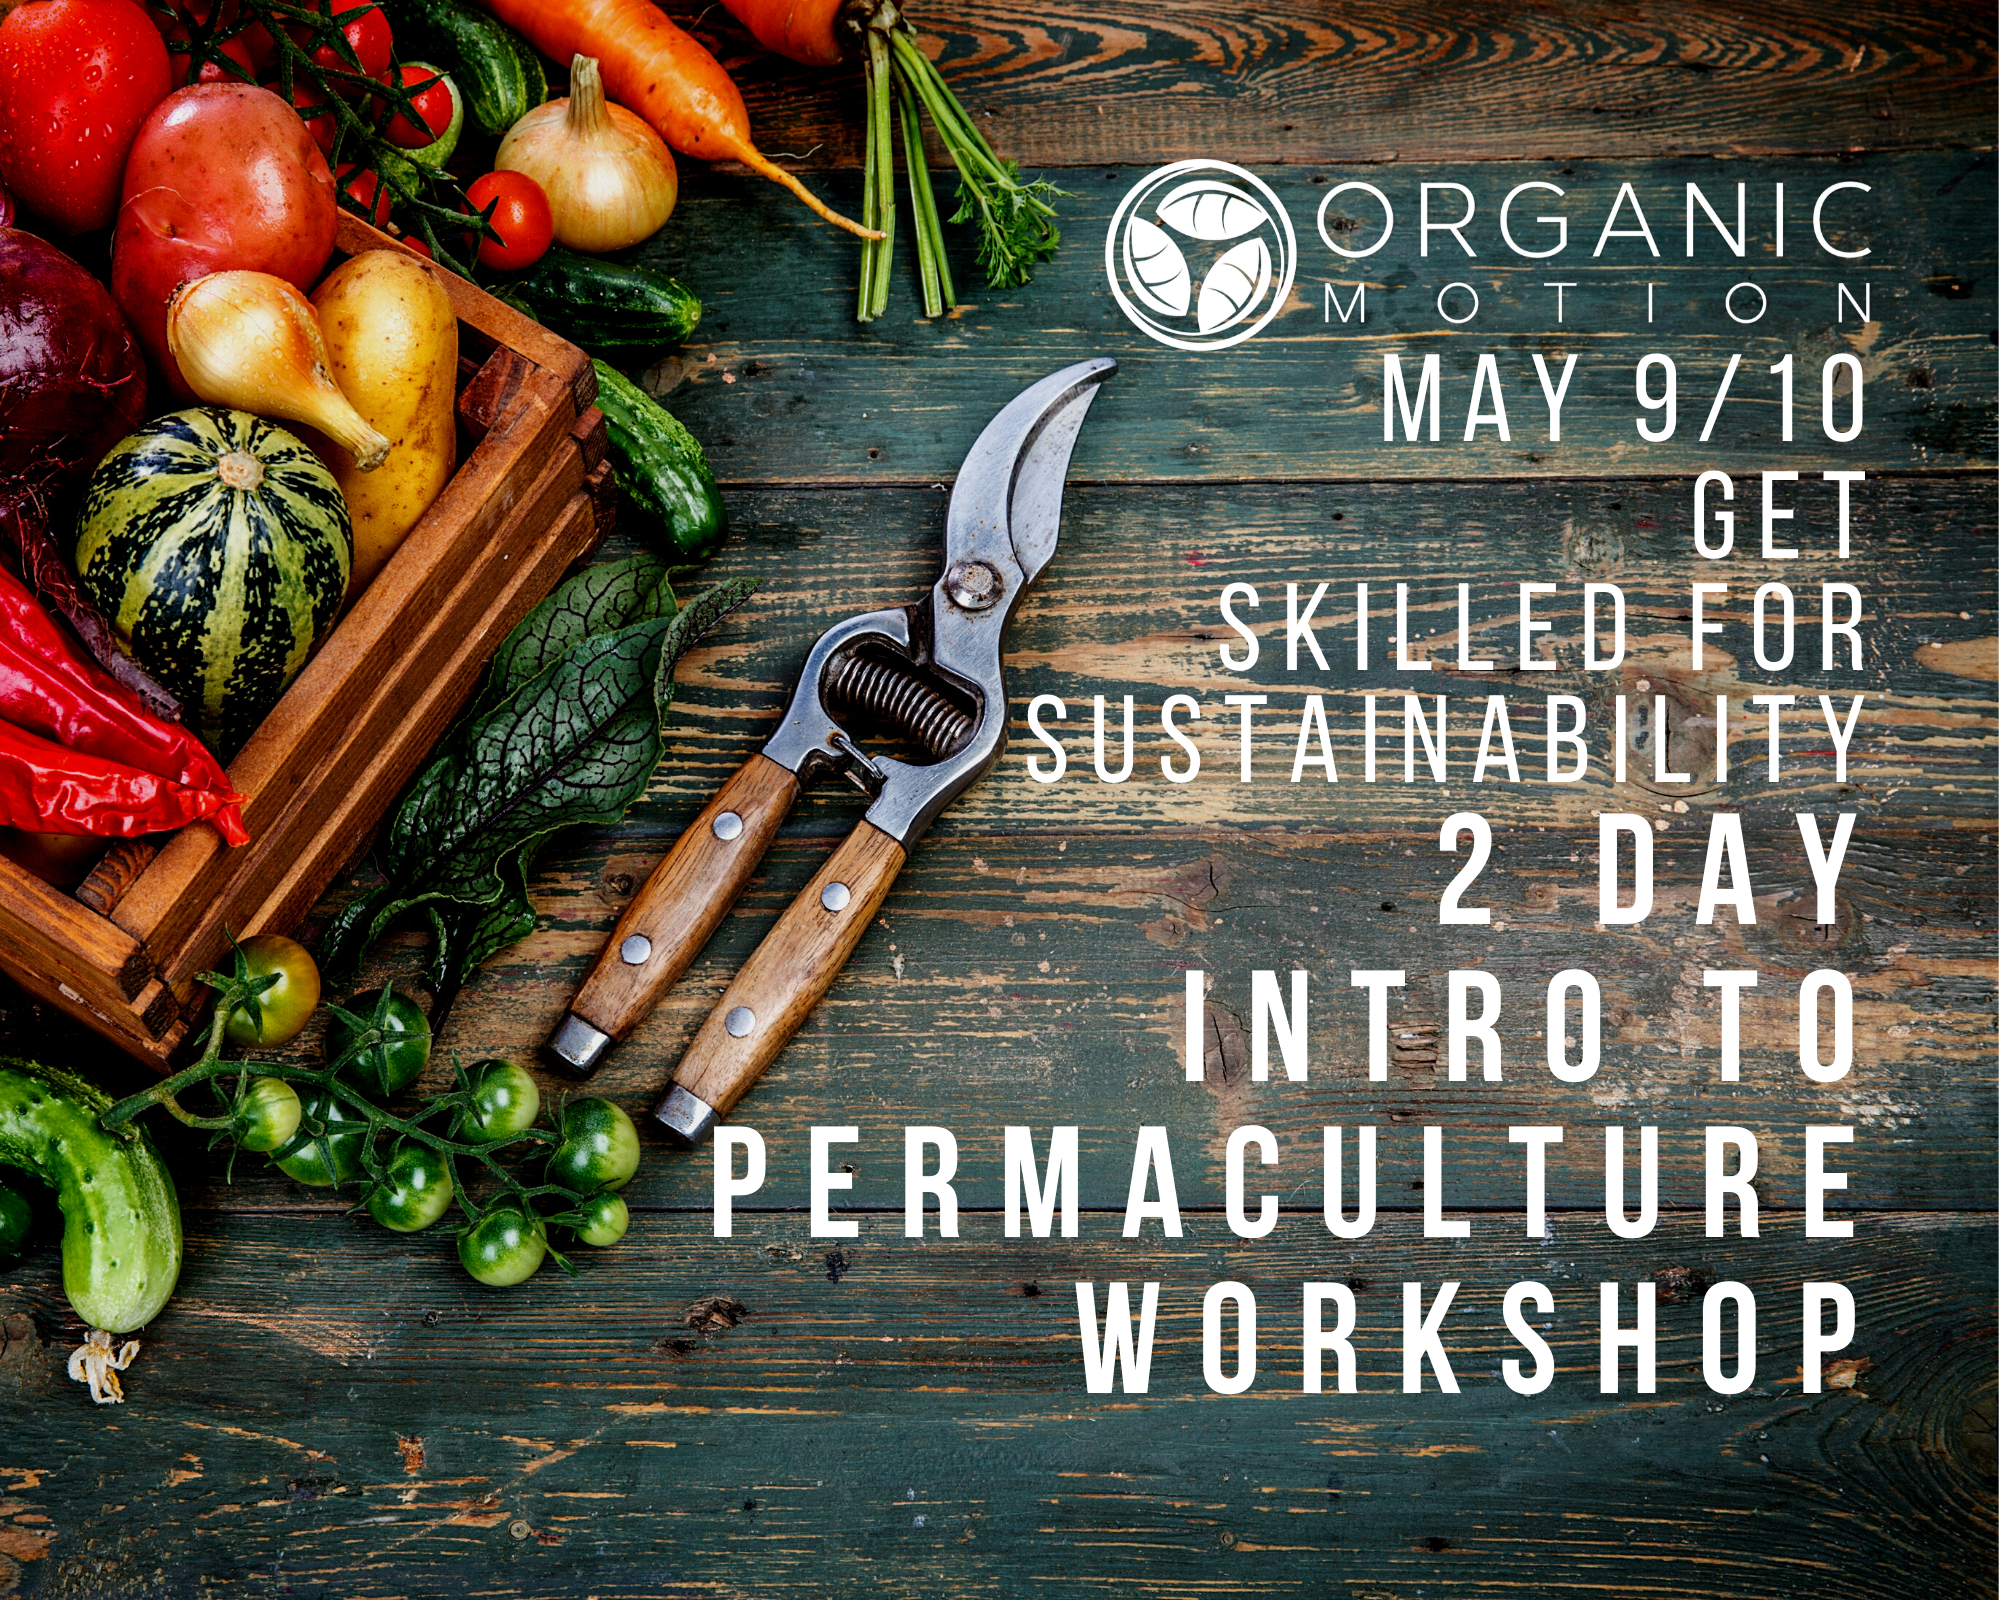 INTRO TO PERMACULTURE MAY 9/10 POSTER